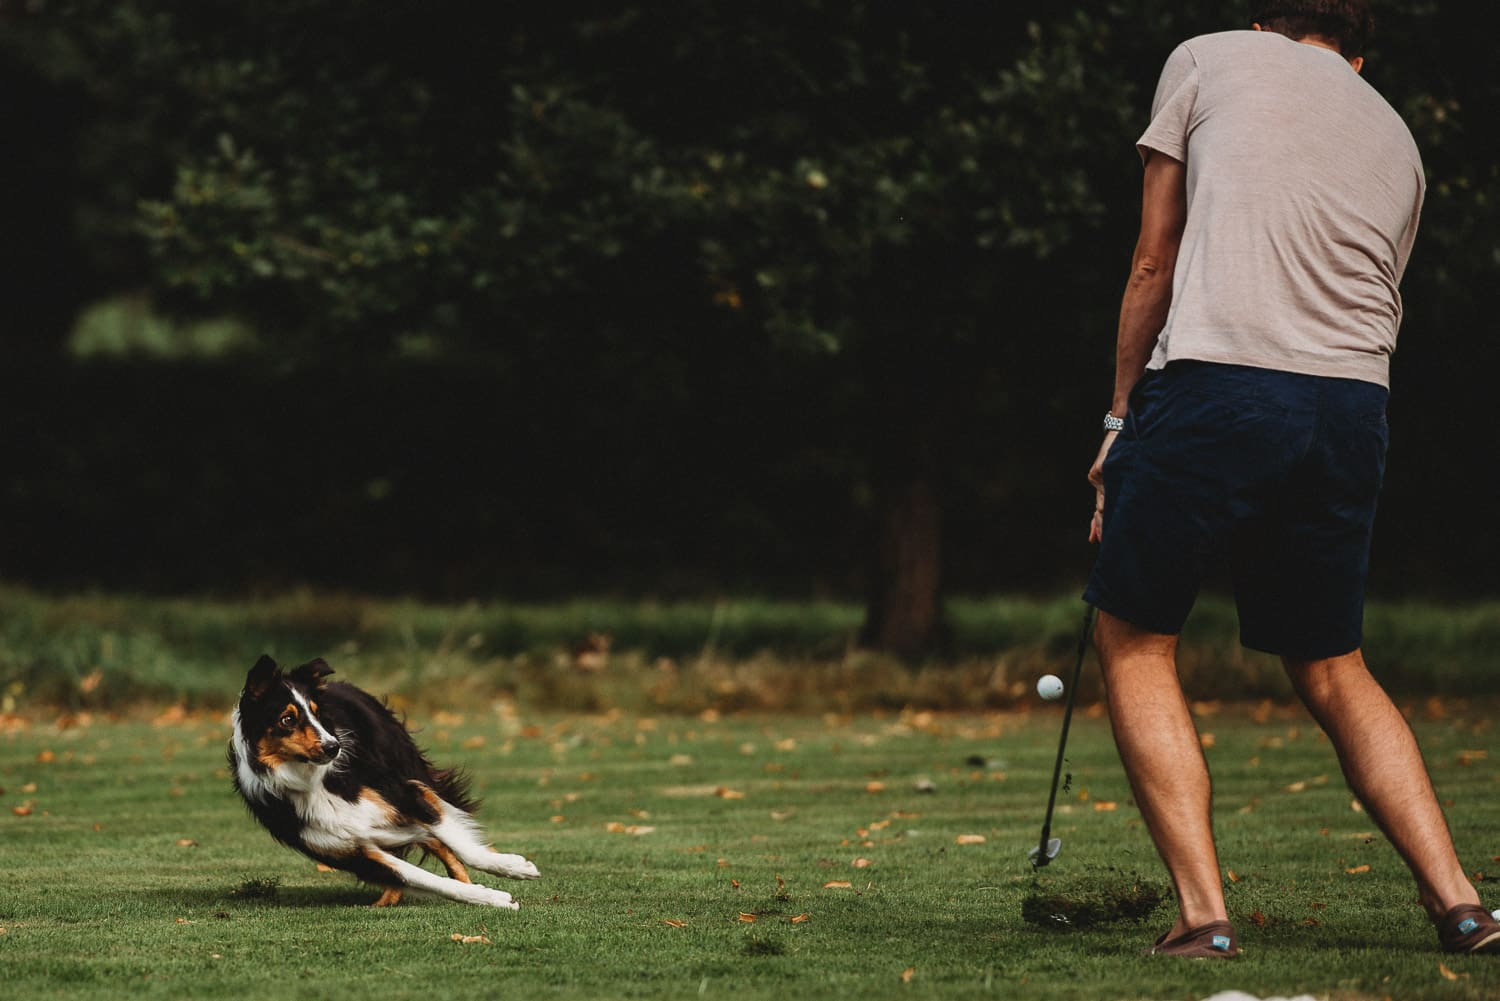 North Wales Wedding Photographer at Pentre Mawr Country House with a dog